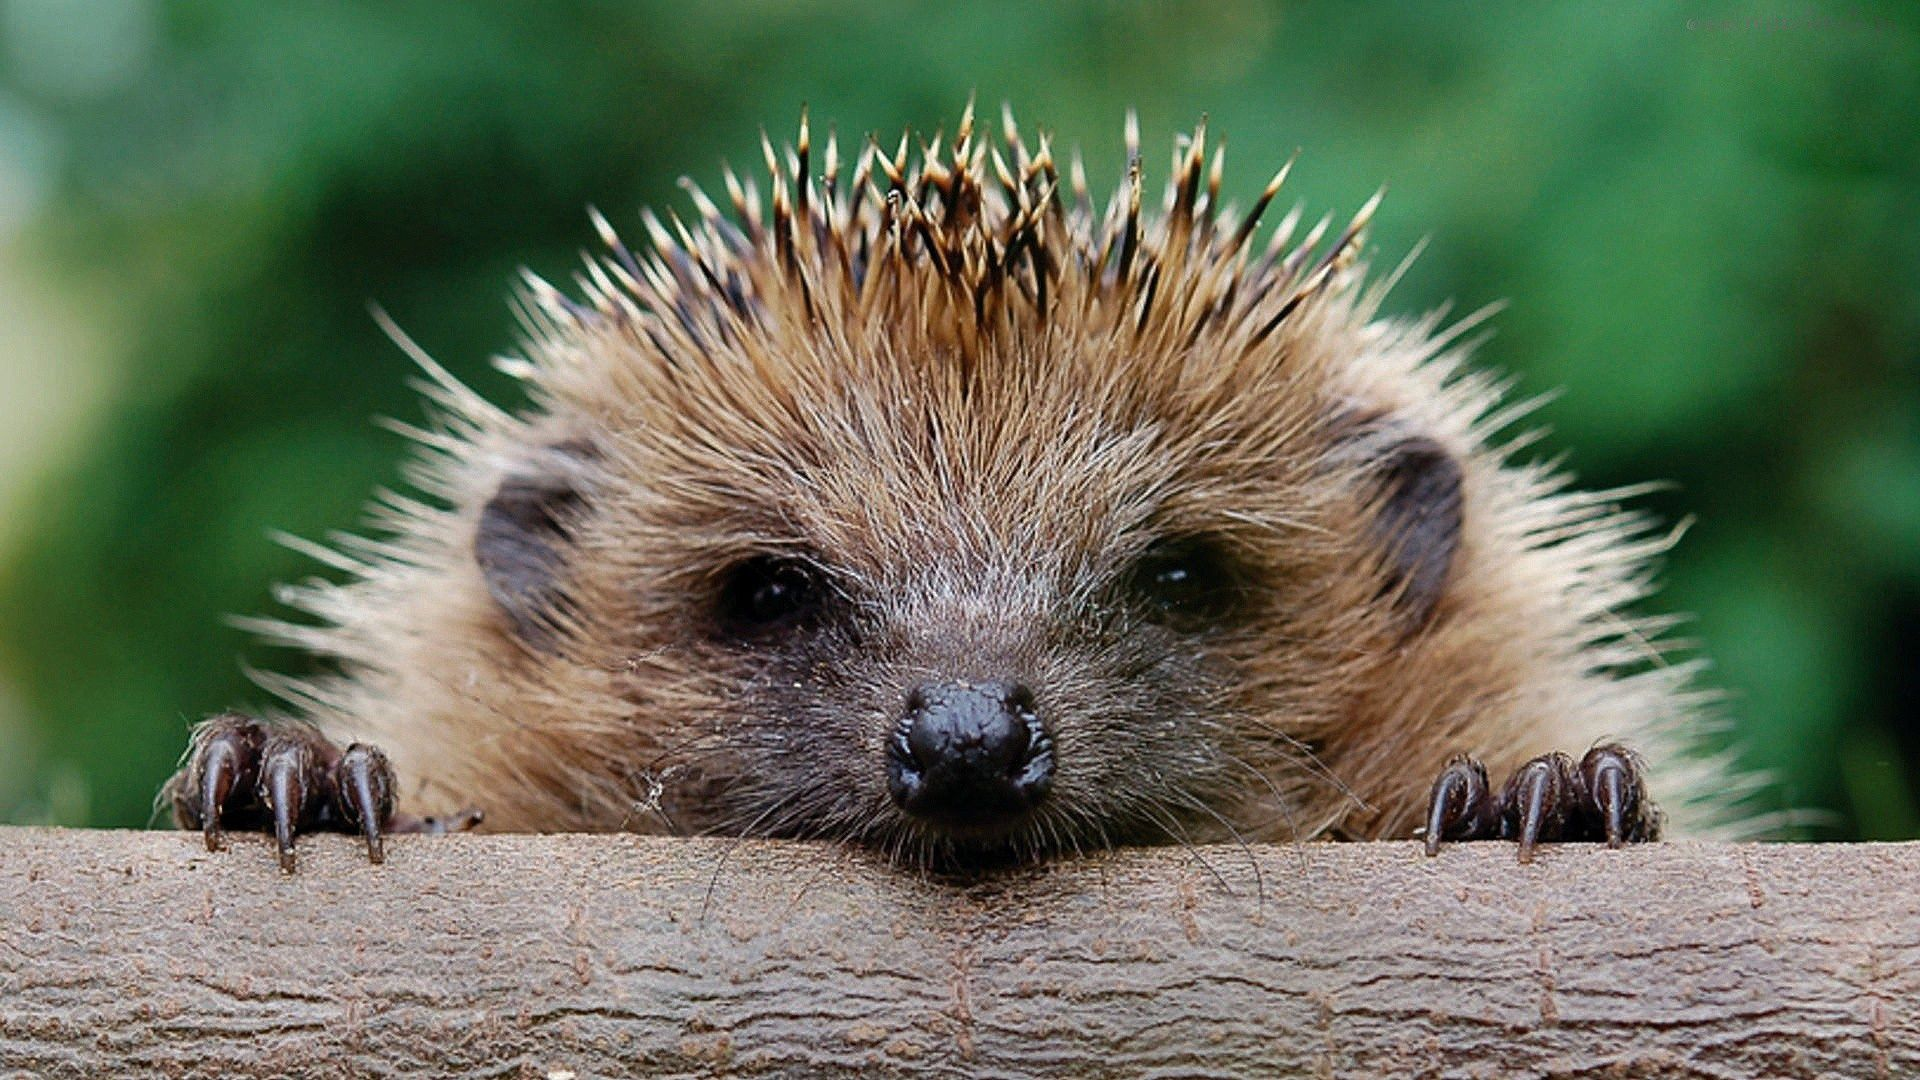 Hedgehog Wallpapers 59 Top Free Hedgehog Photos For Ios Animal Photo Hedgehog All About Animals